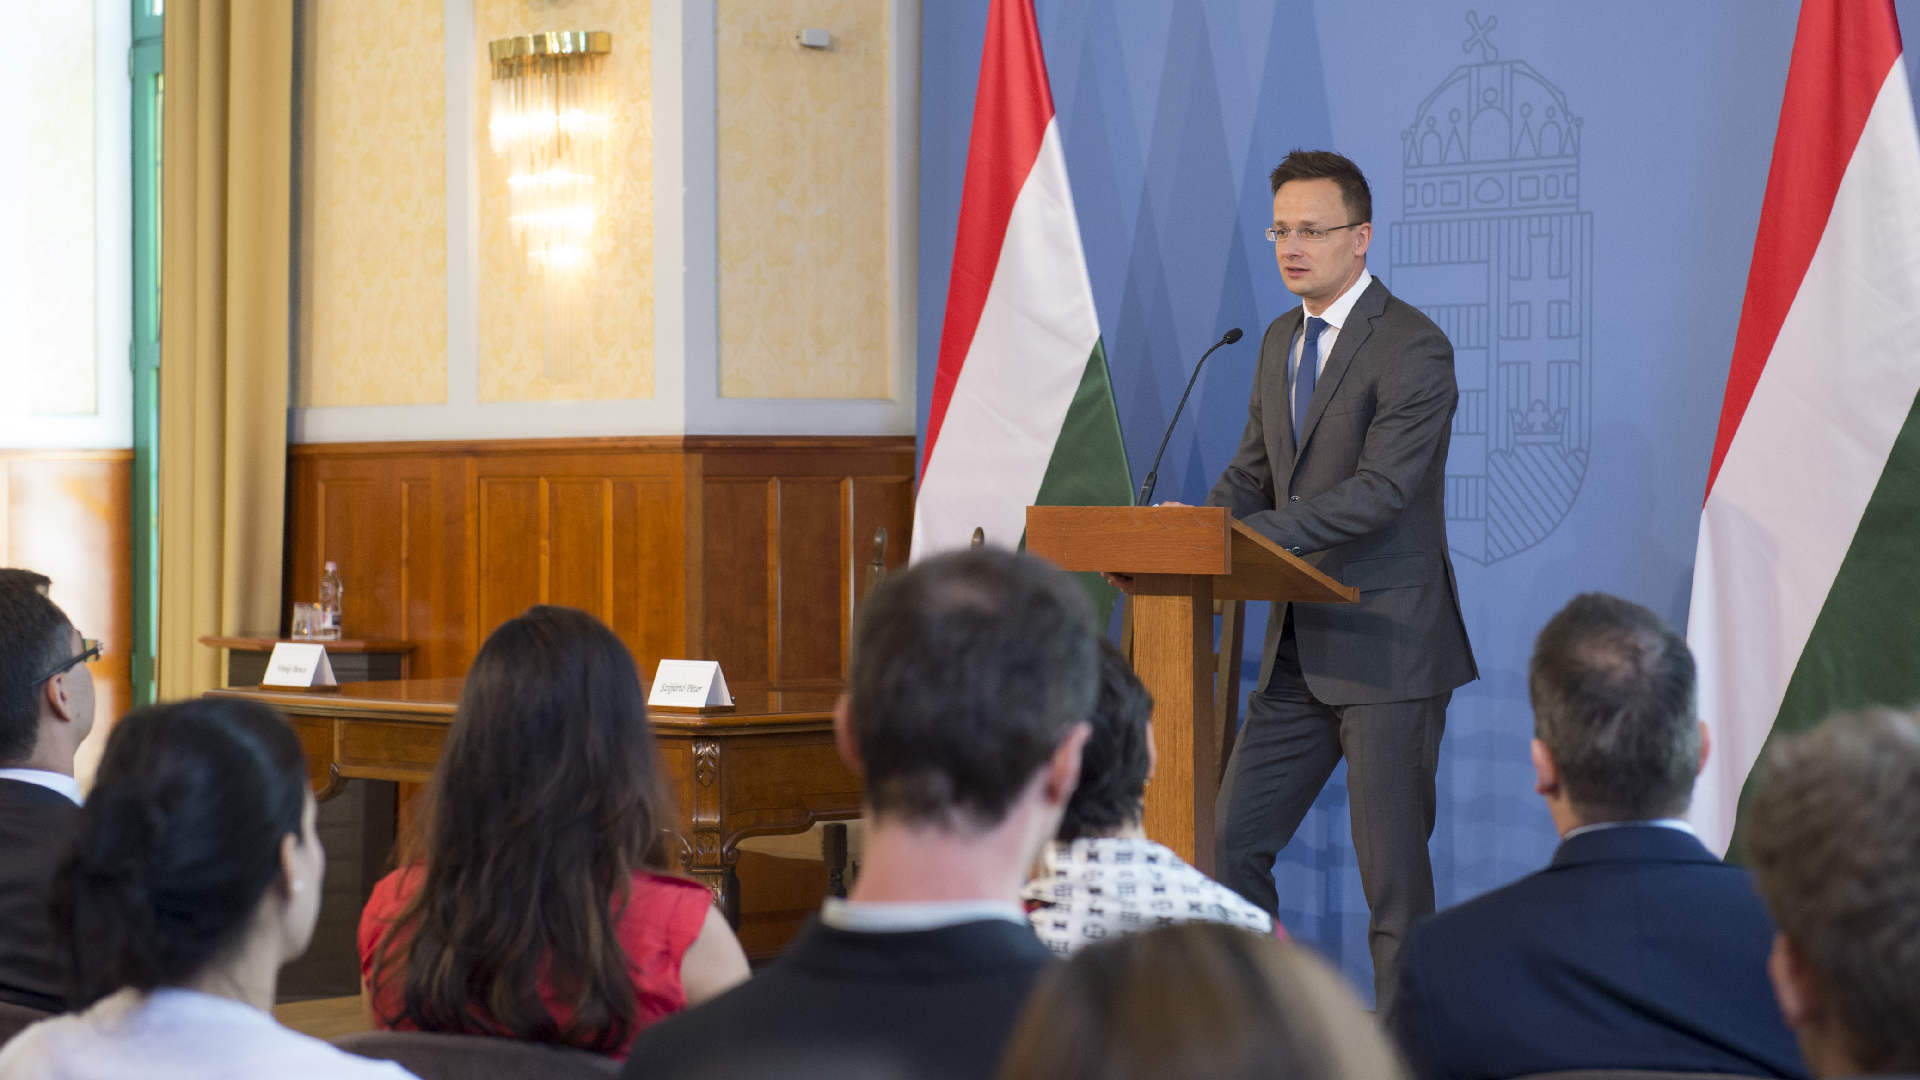 Strategic agreement concluded between the Hungarian Government and EPAM